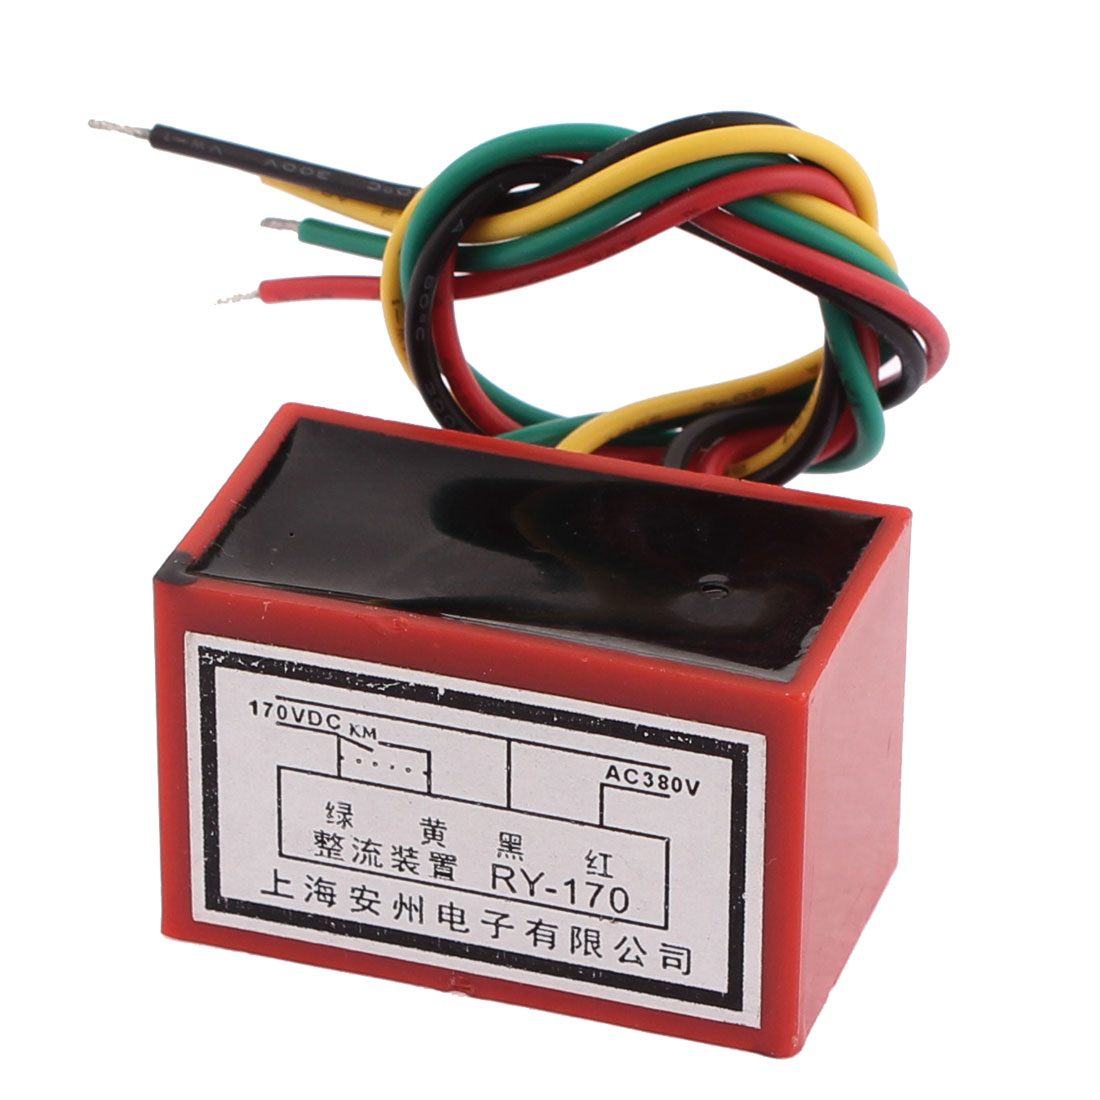 RY-170 AC 380V Input to DC 170V Output Red Black Plastic Brake Motor Rectifier